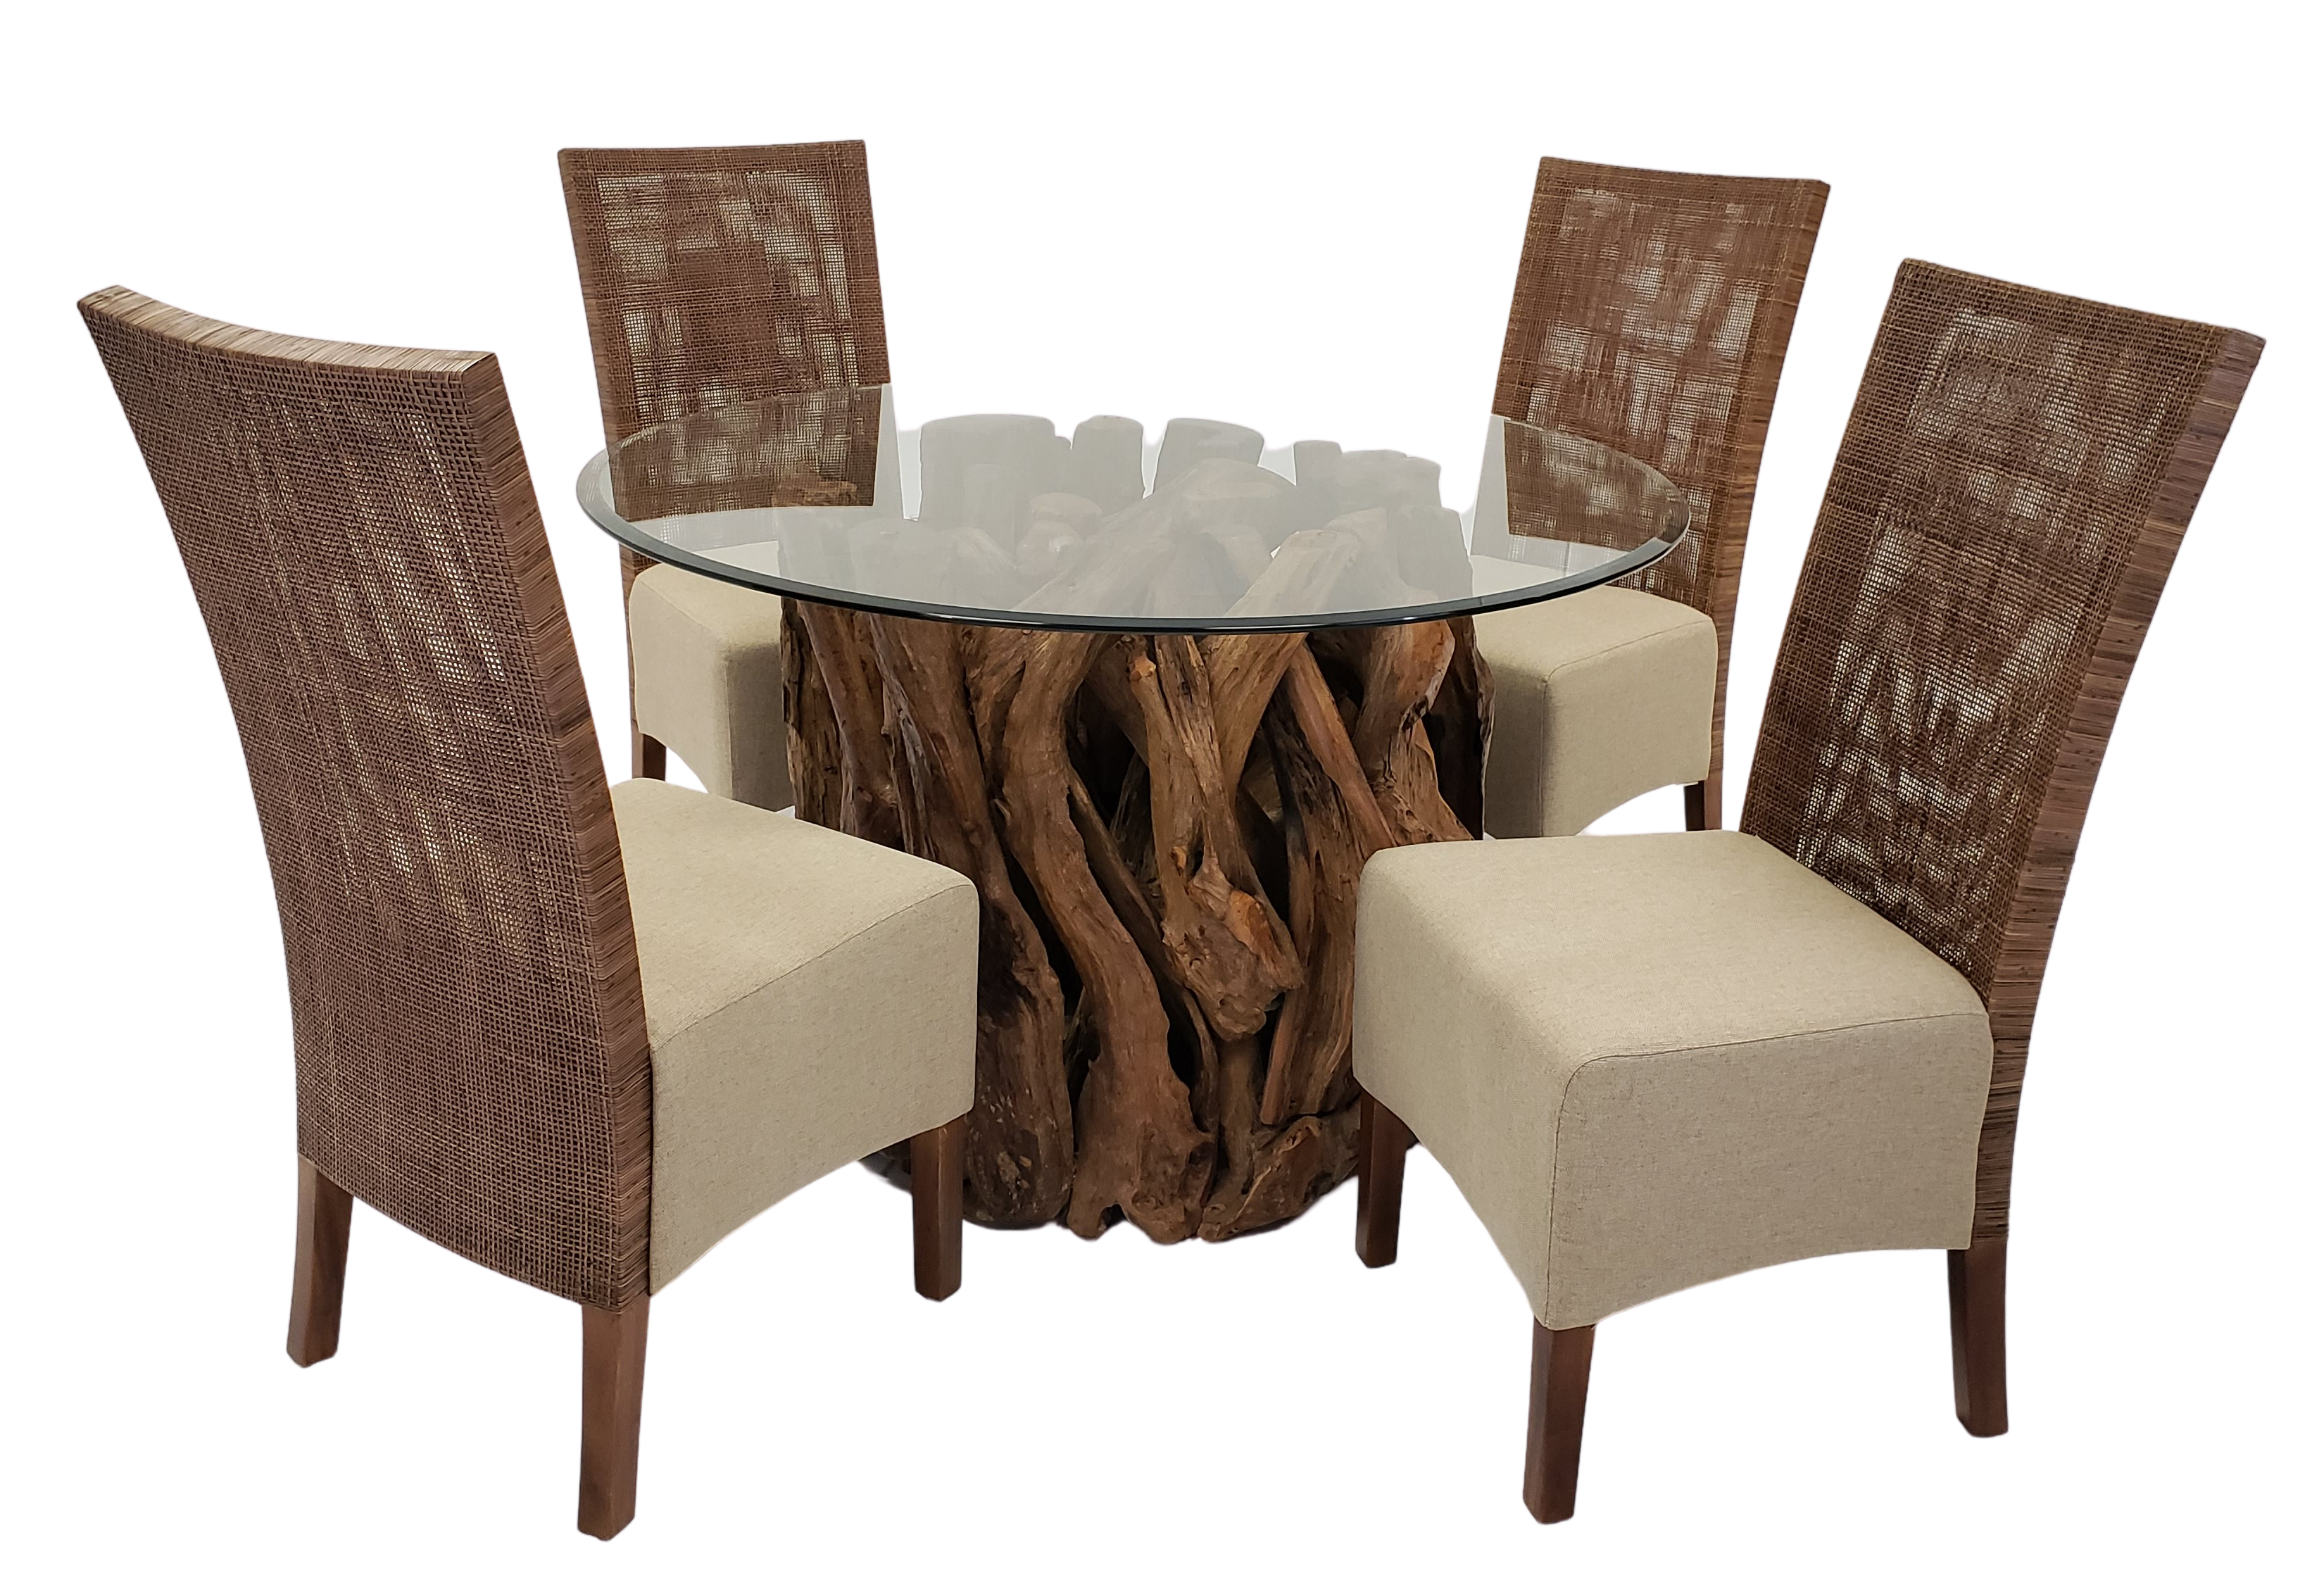 Teak Root Base with Preston Chairs